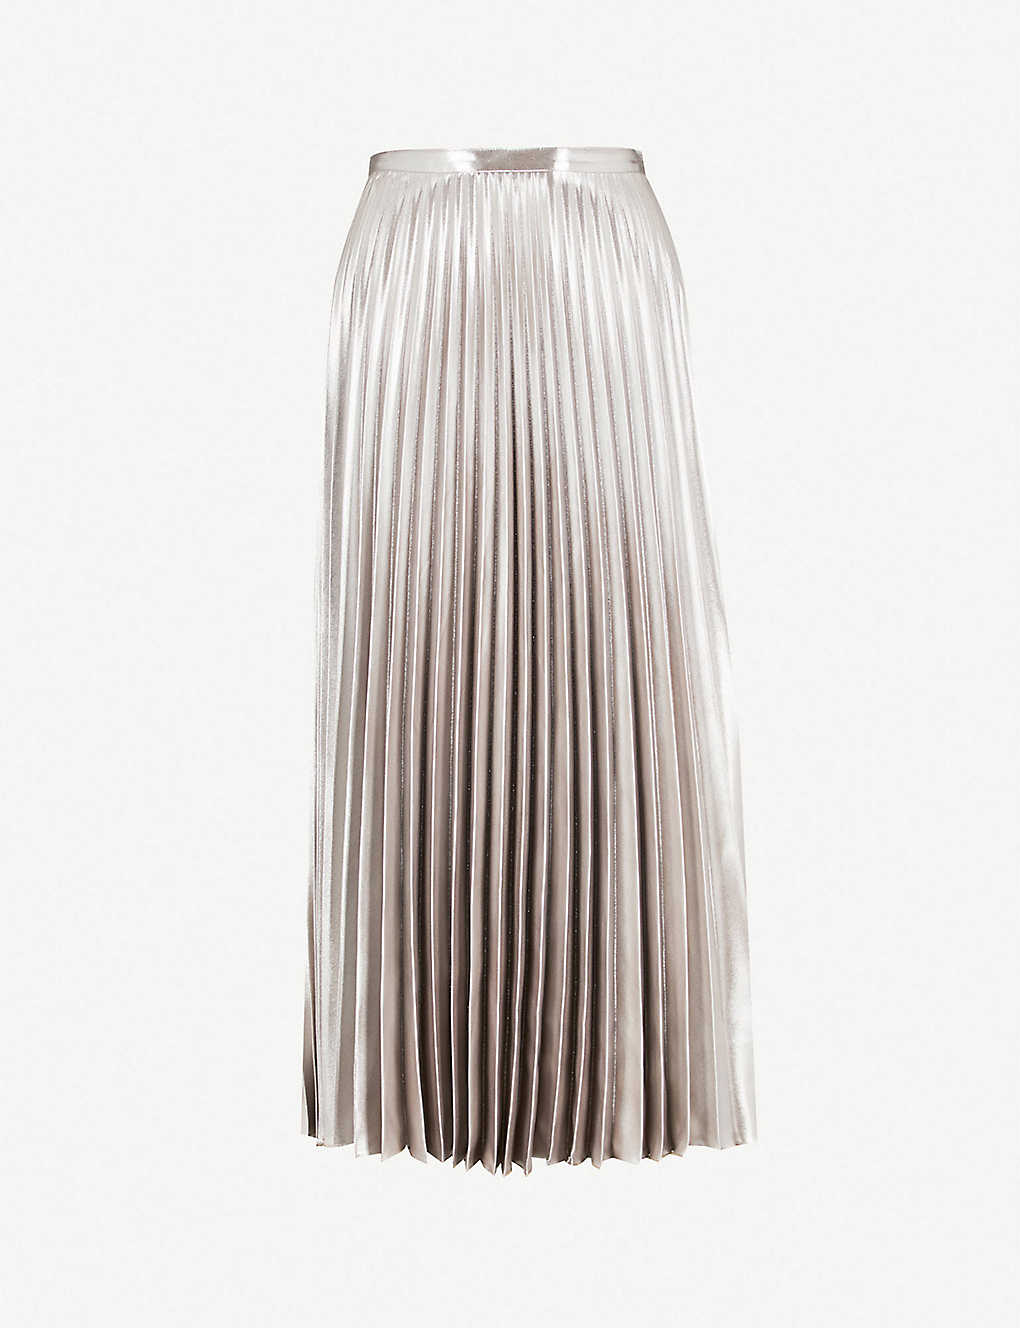 805deb93ae Metallic pleated skirt zoom; Metallic pleated skirt zoom ...